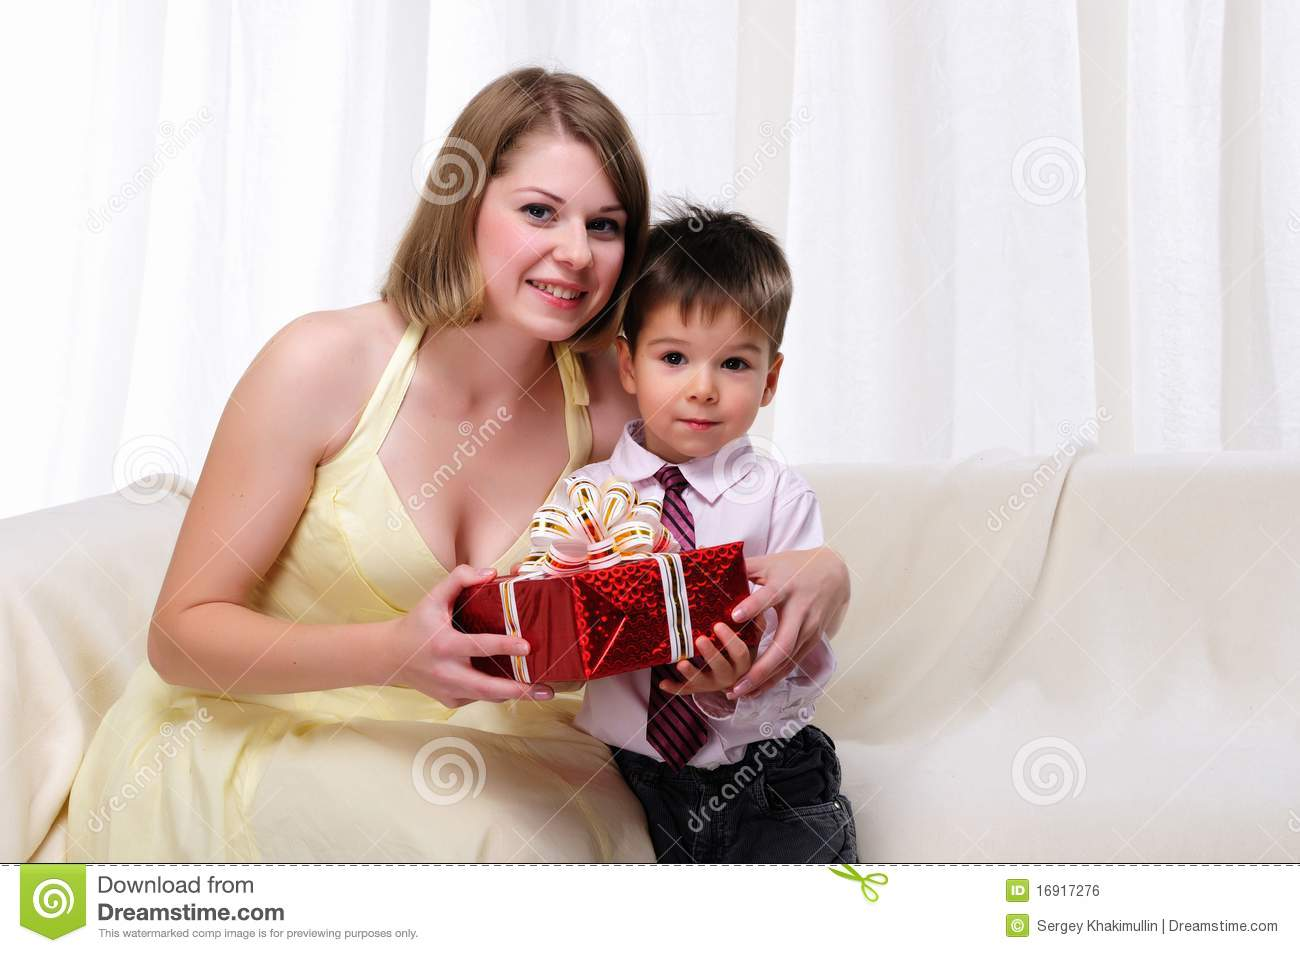 mom giving a gift